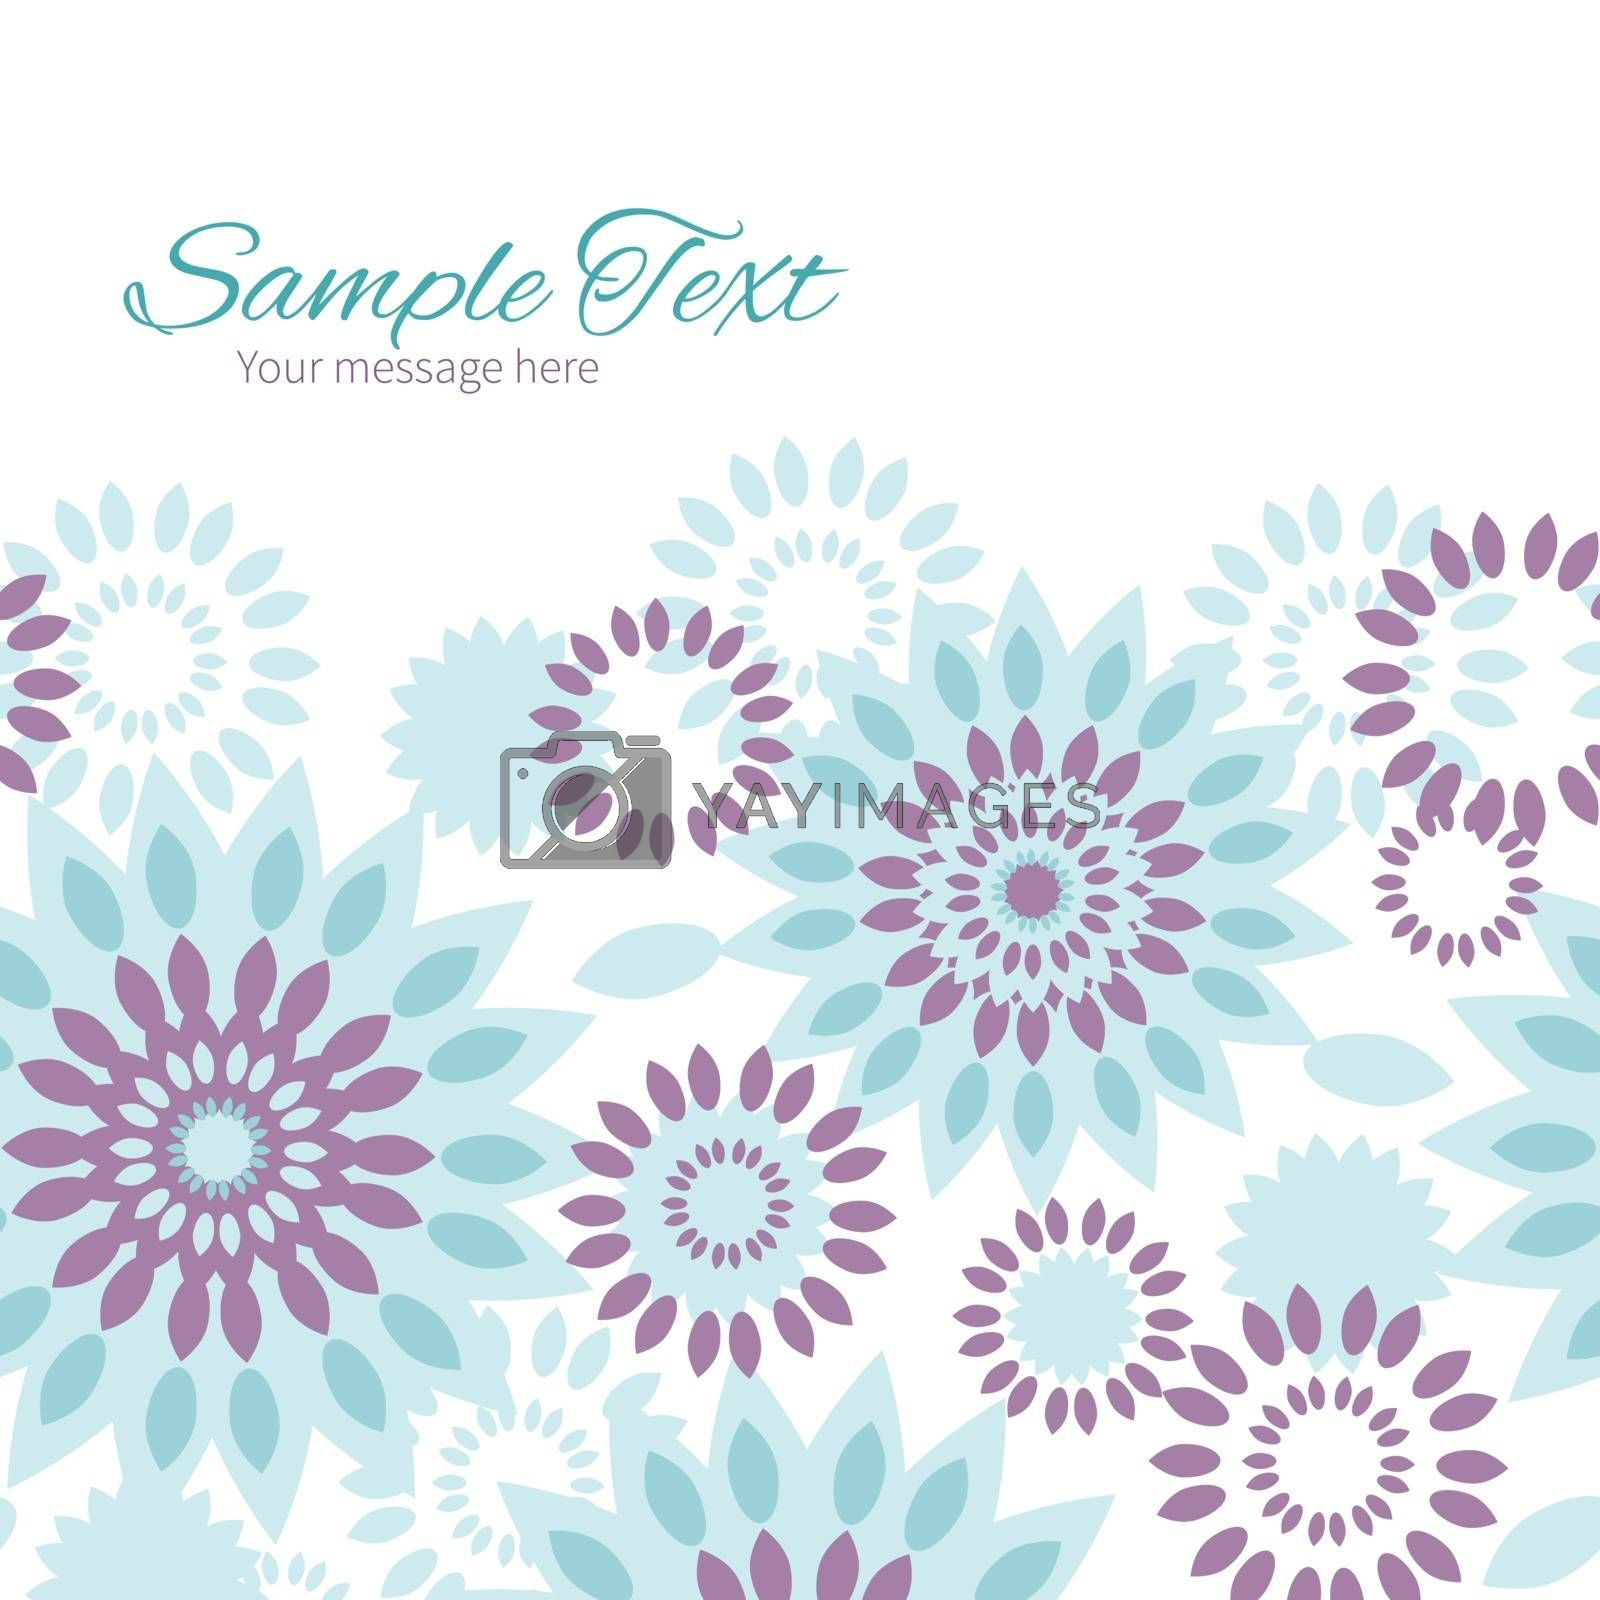 Vector purple and blue floral abstract horizontal frame seamless pattern background graphic design